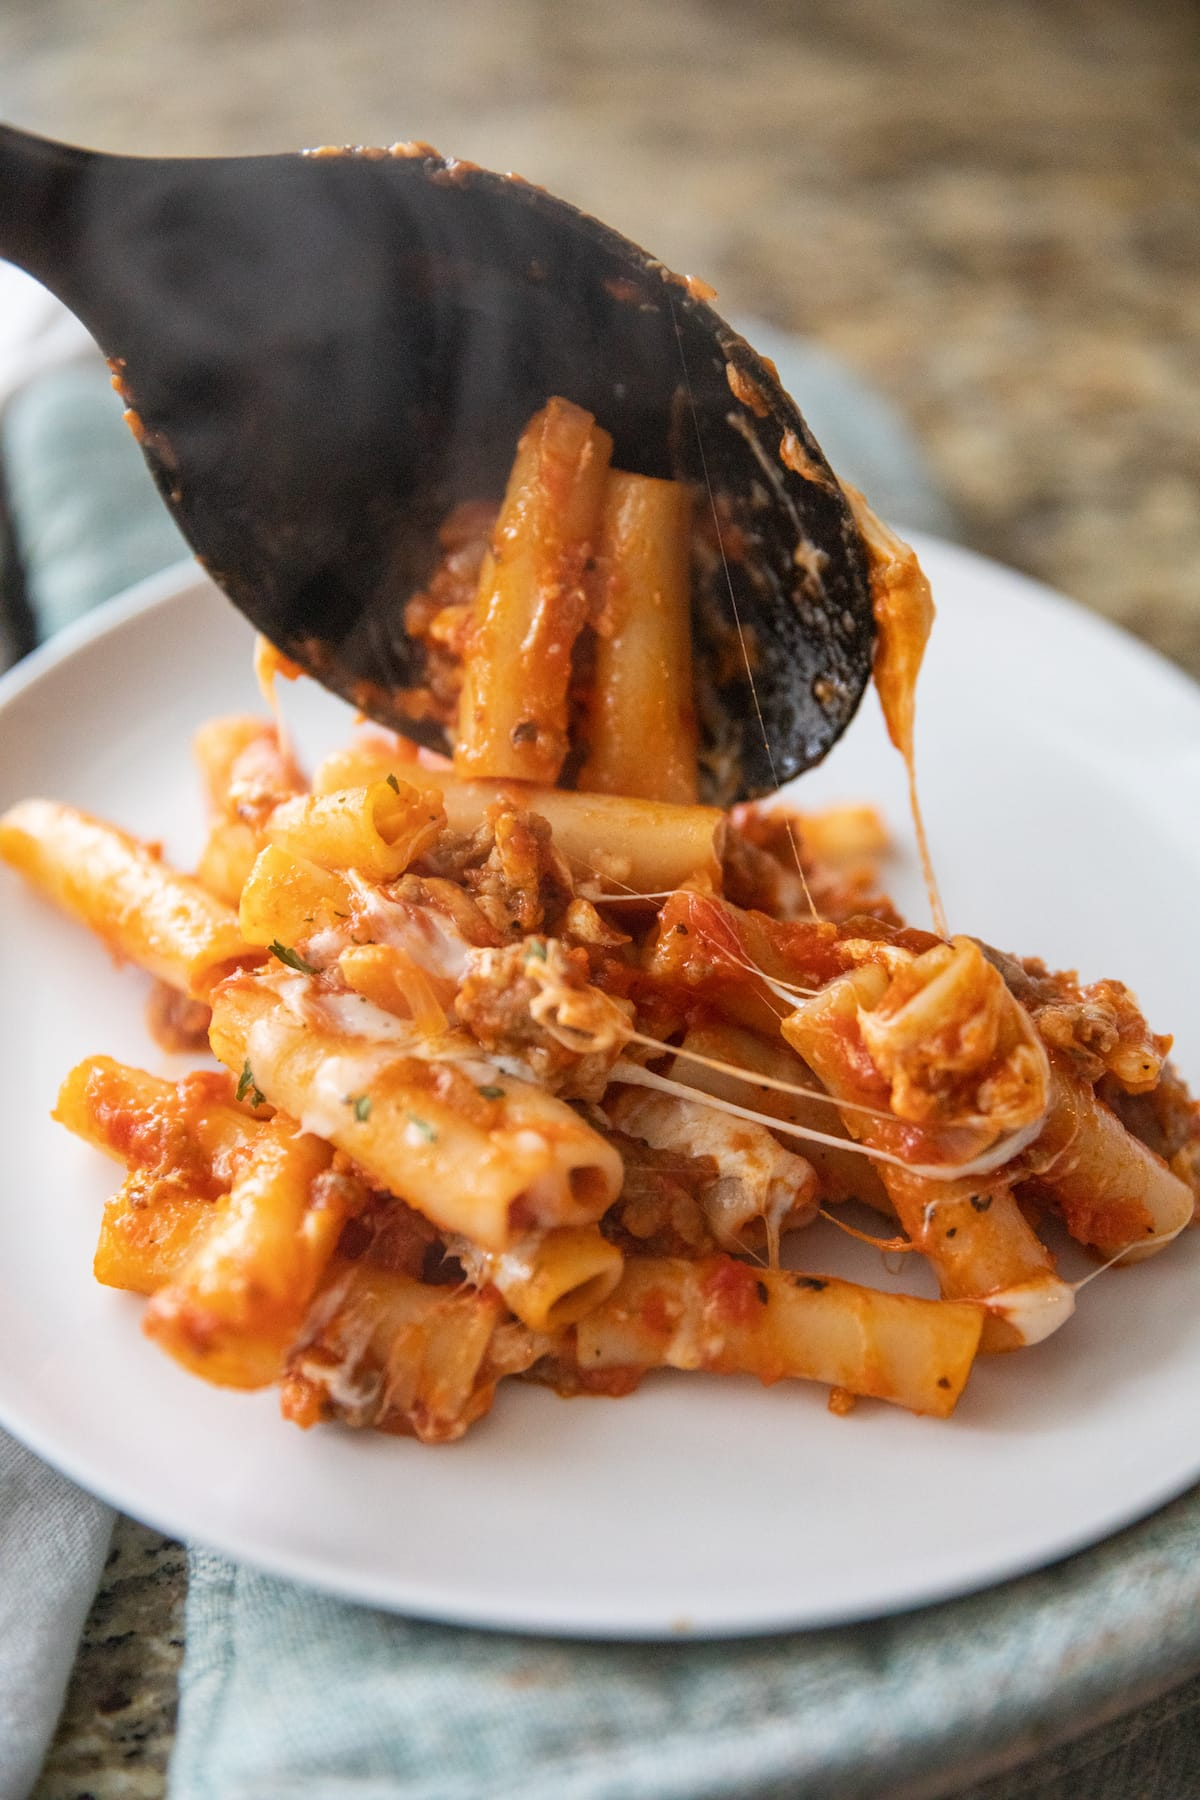 spooning baked ziti onto white plate